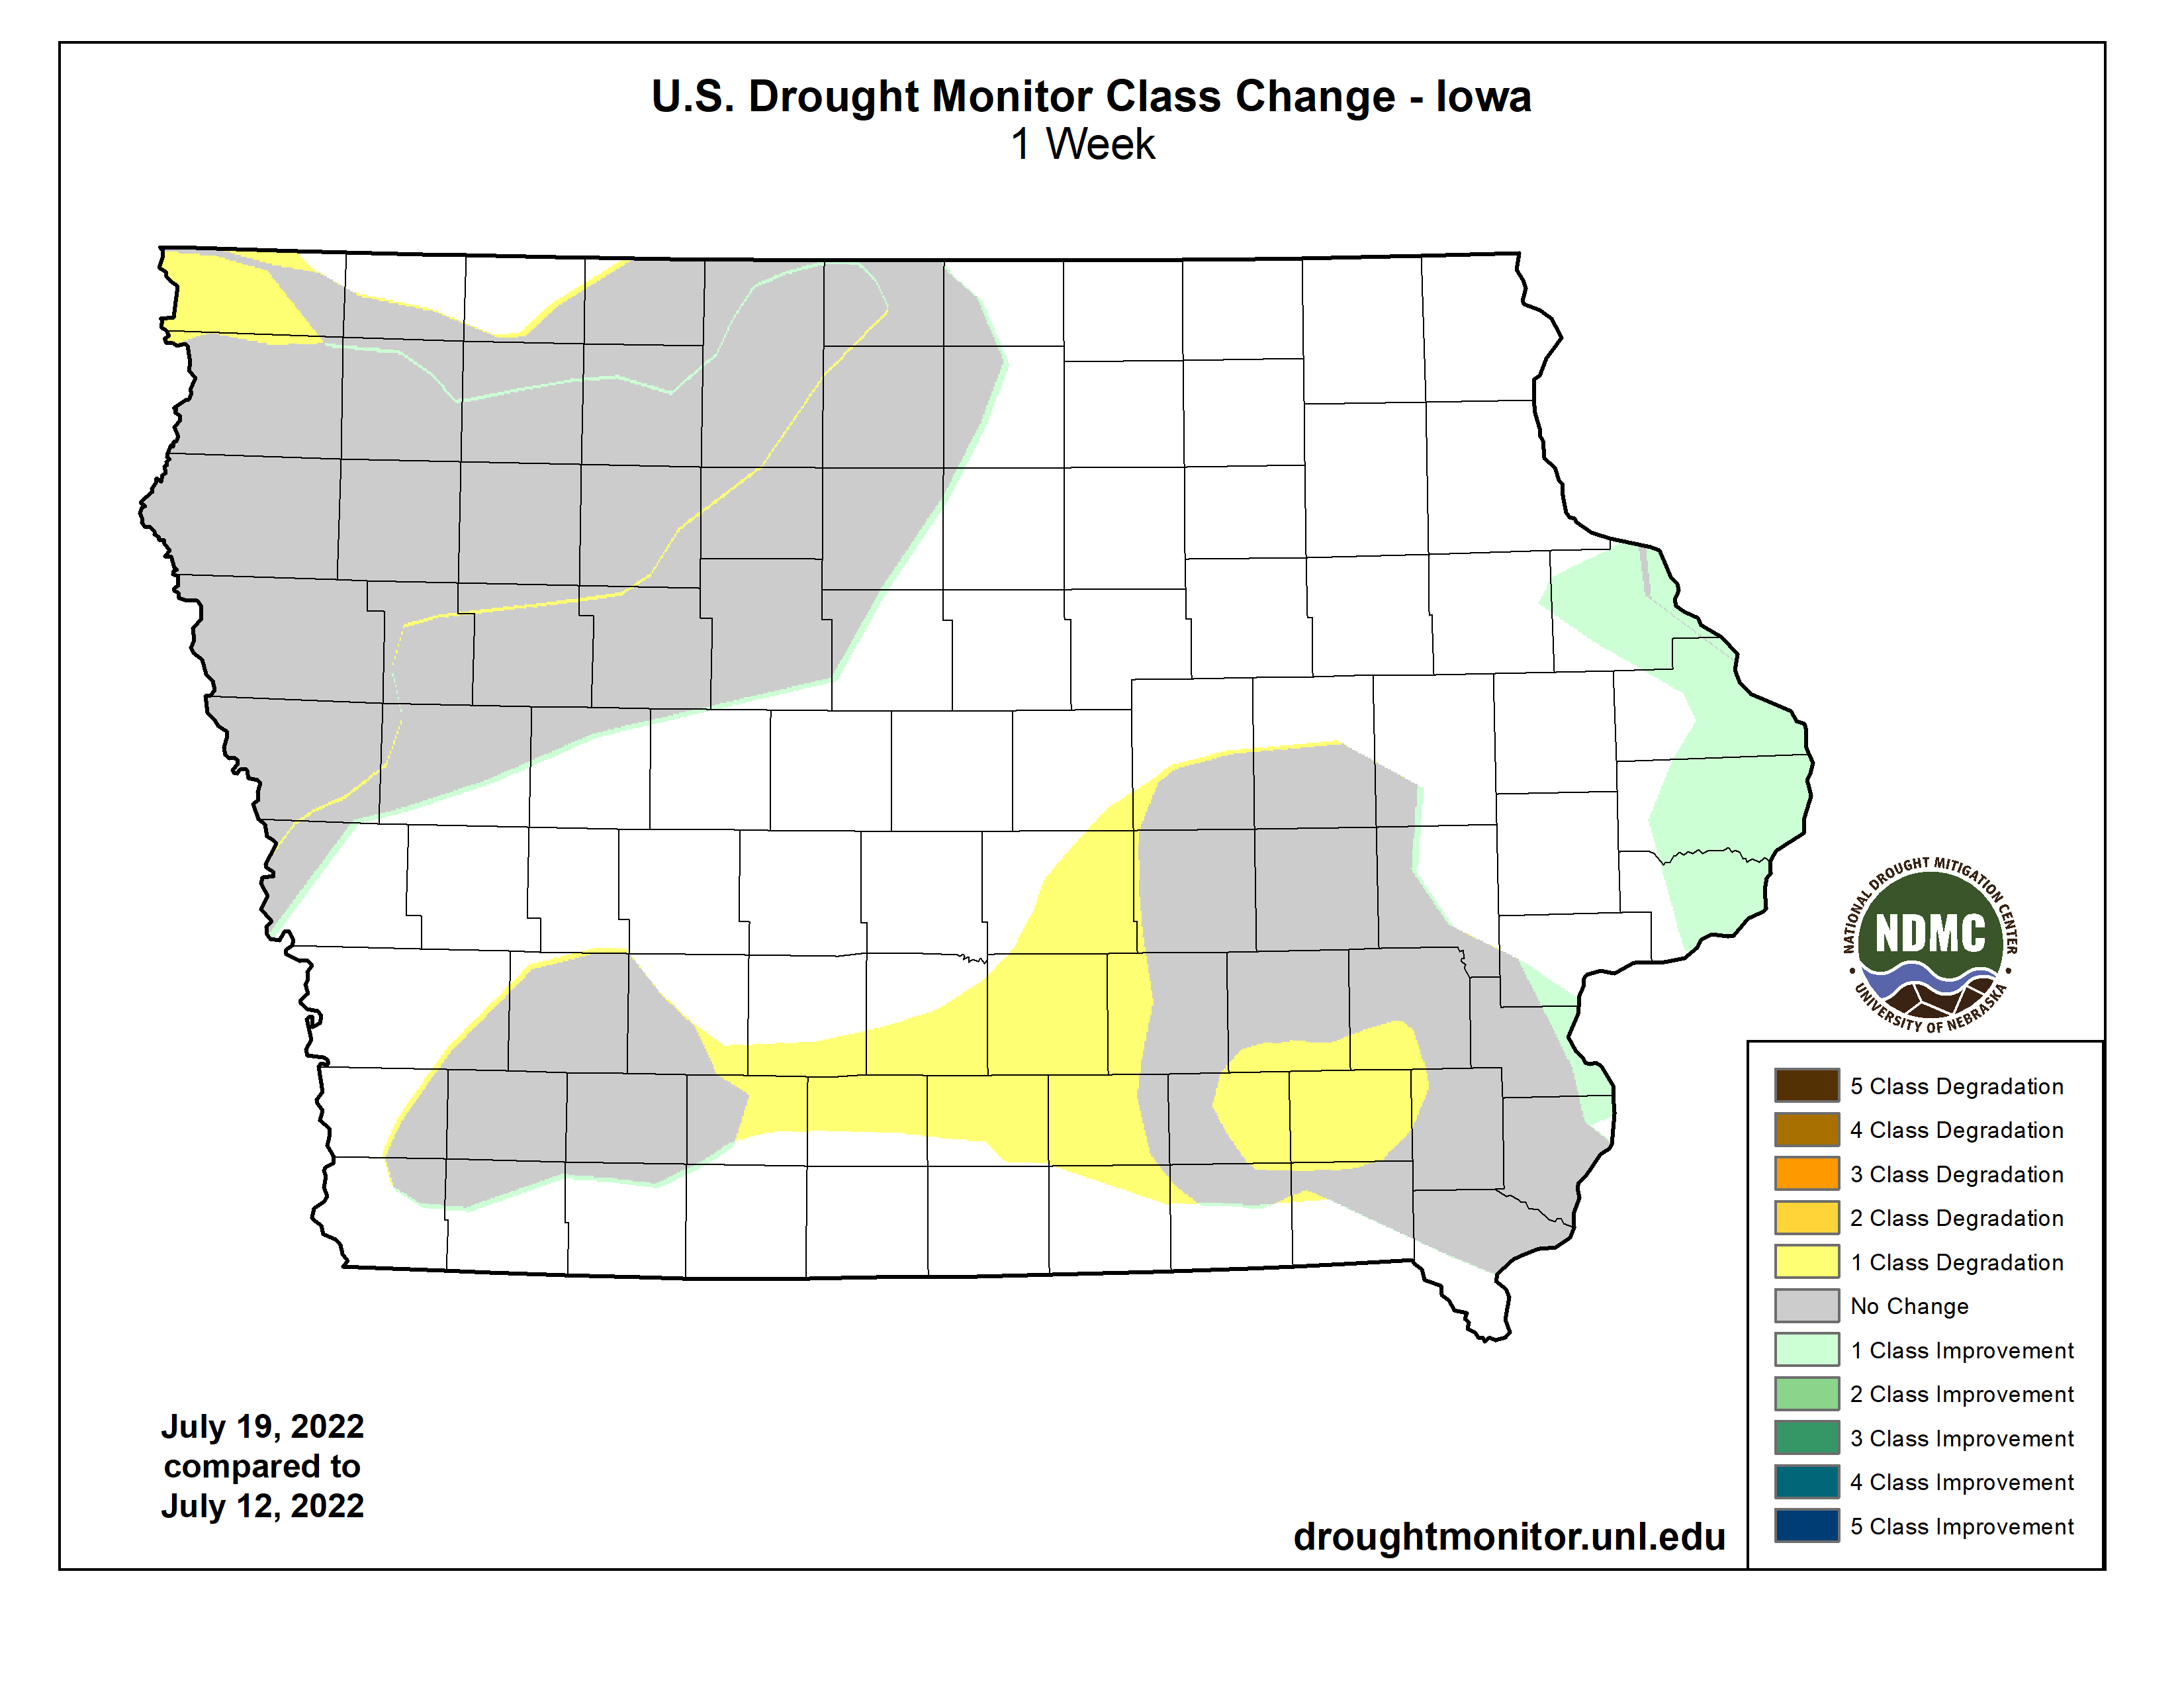 One Week US Drought Monitor Class Change